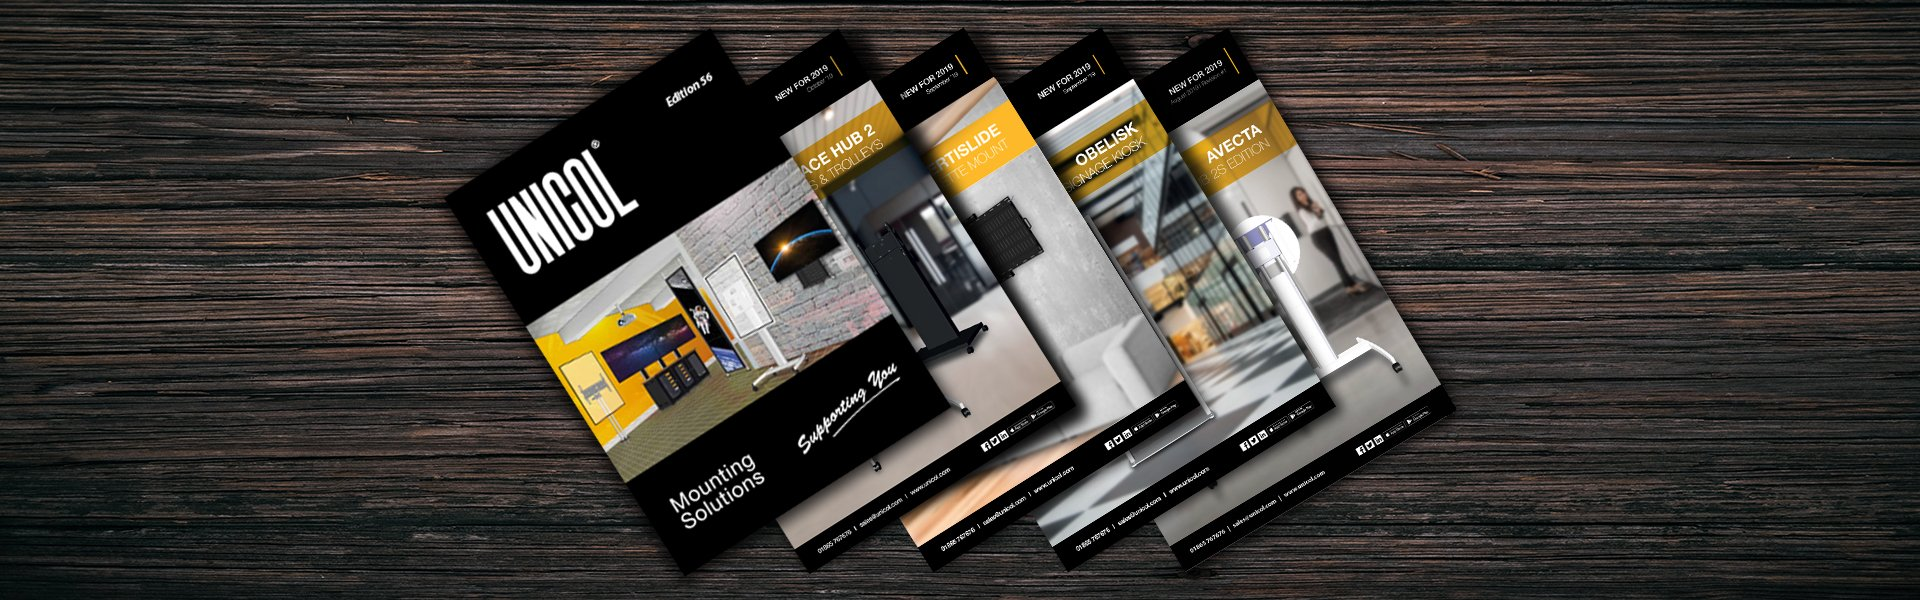 unicol catalogue and product brochures available online